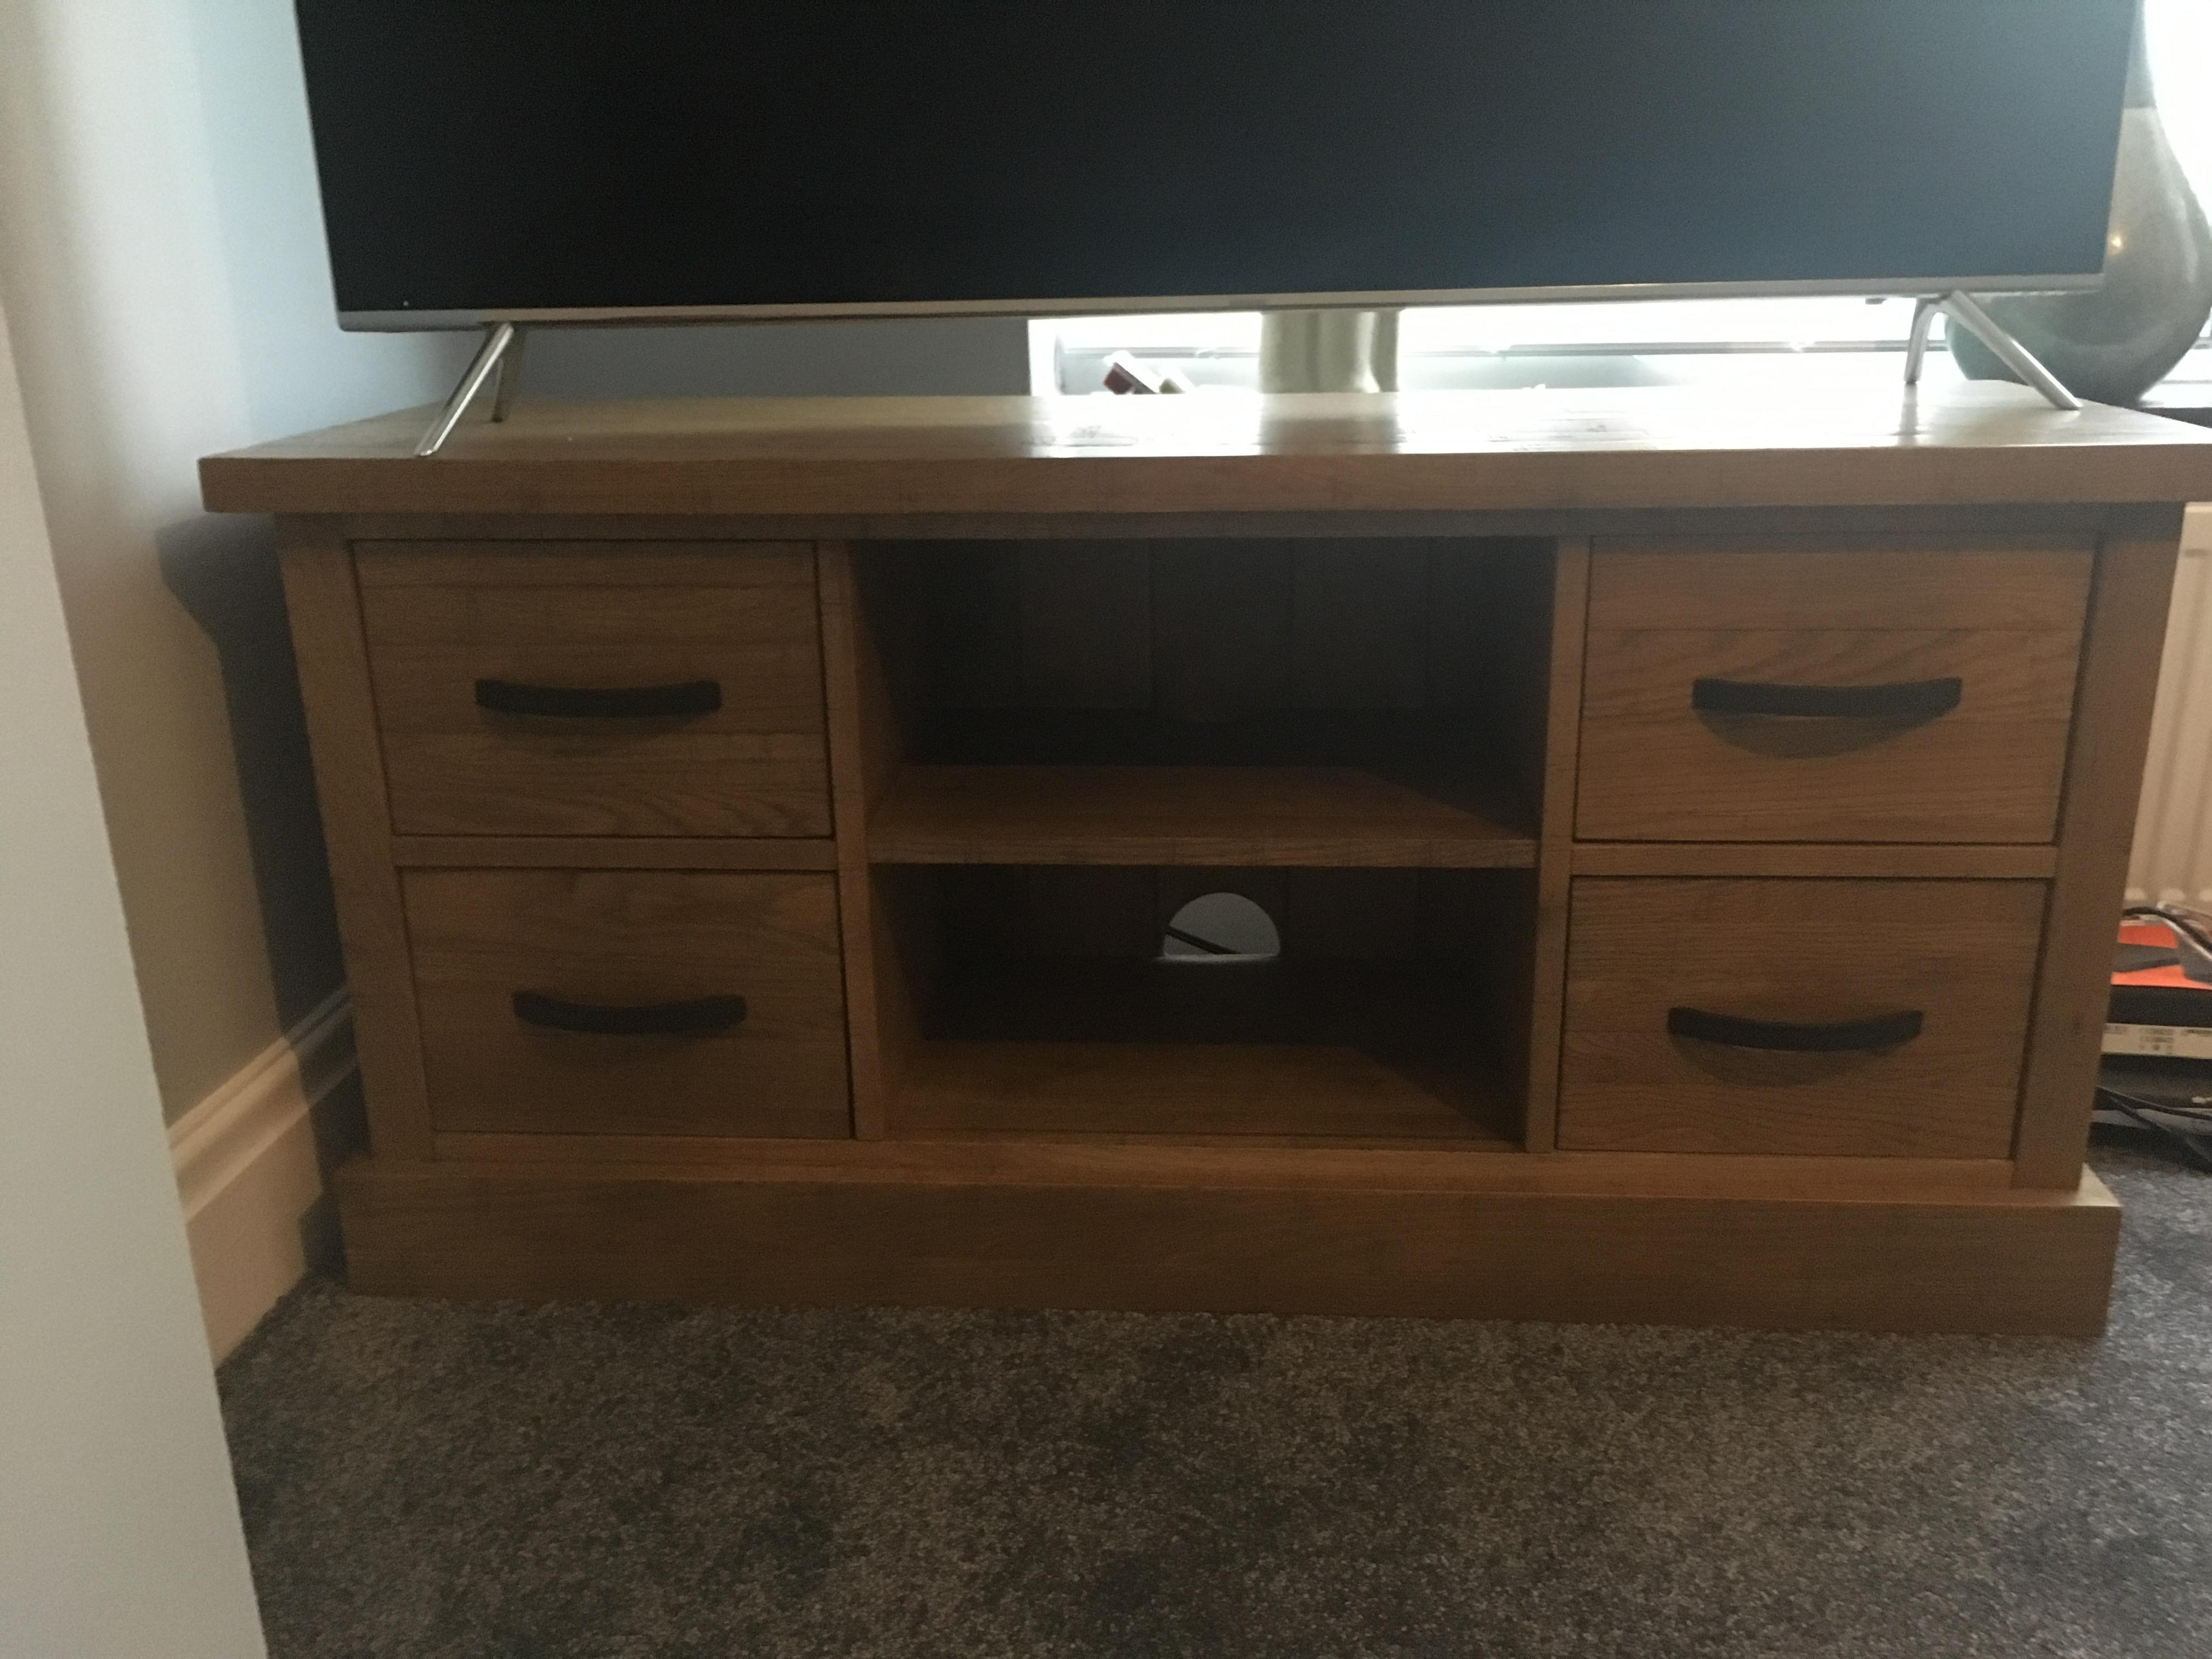 Cambridge Living Room Furniture from Next. Tv cabinet,